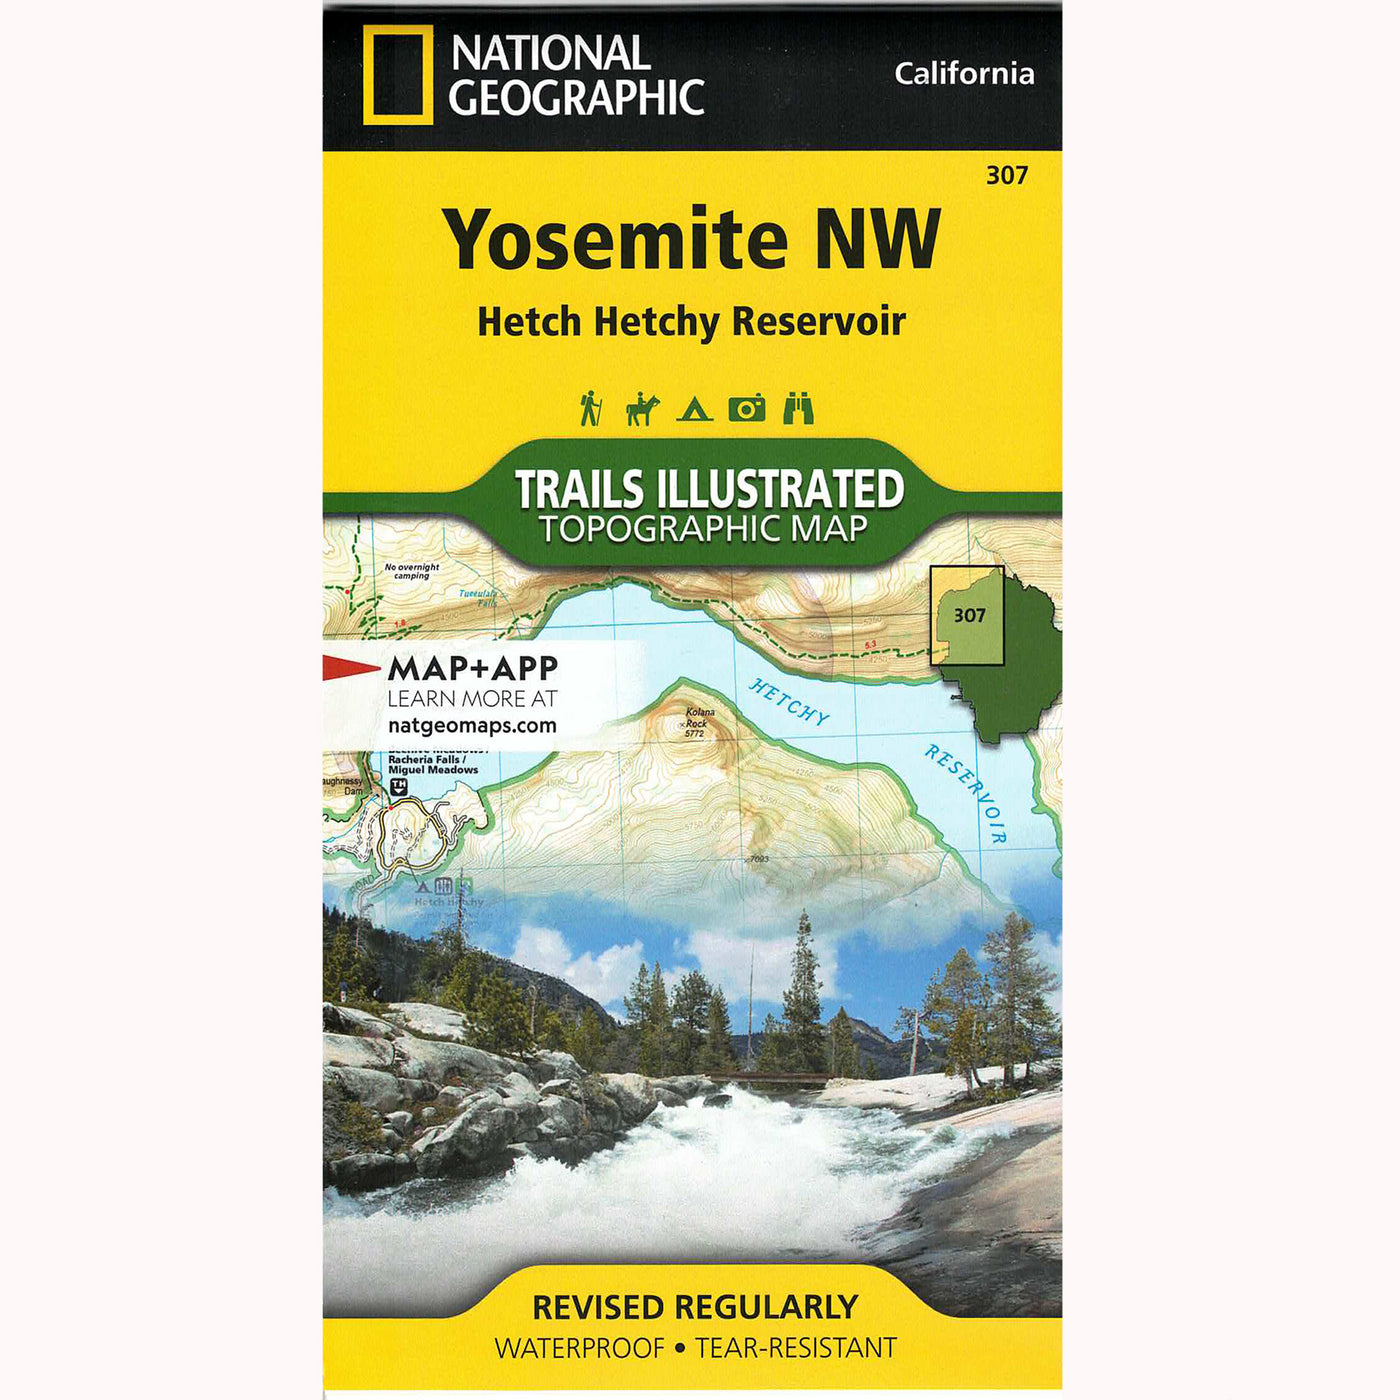 Yosemite NW Trails Illustrated: Hetch Hetchy Reservoir Topographical Map